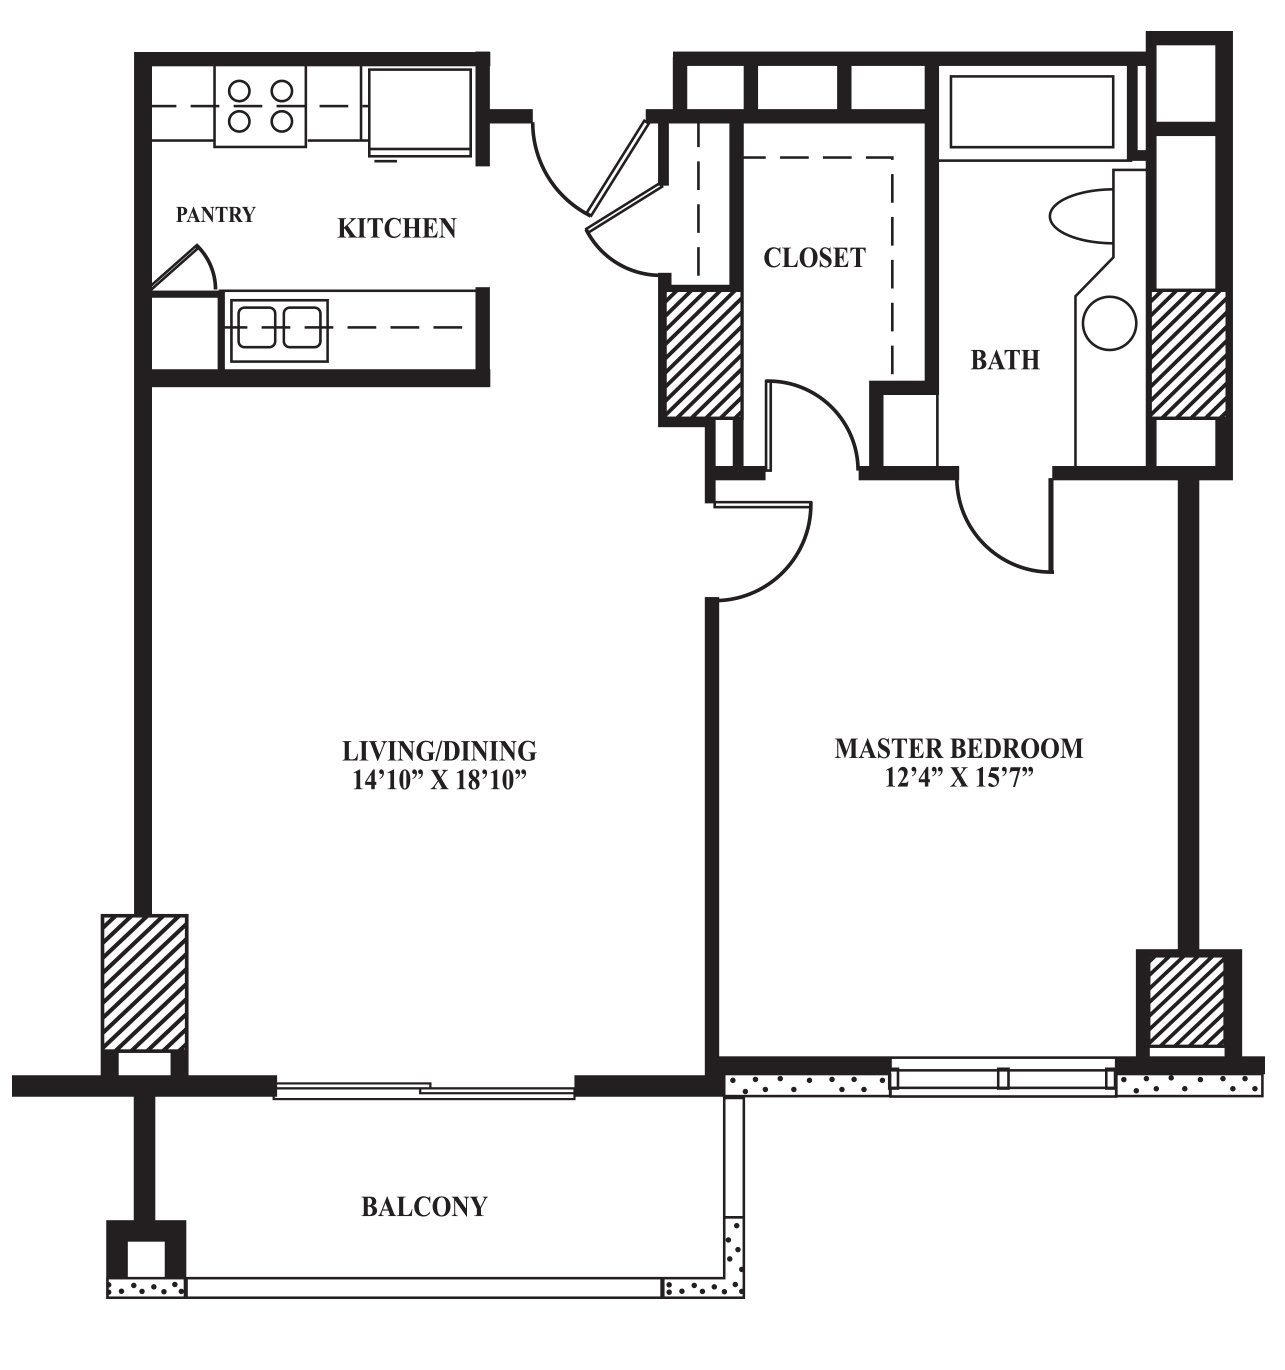 Master bathroom with closet floor plans for Bathroom with walk in closet floor plan